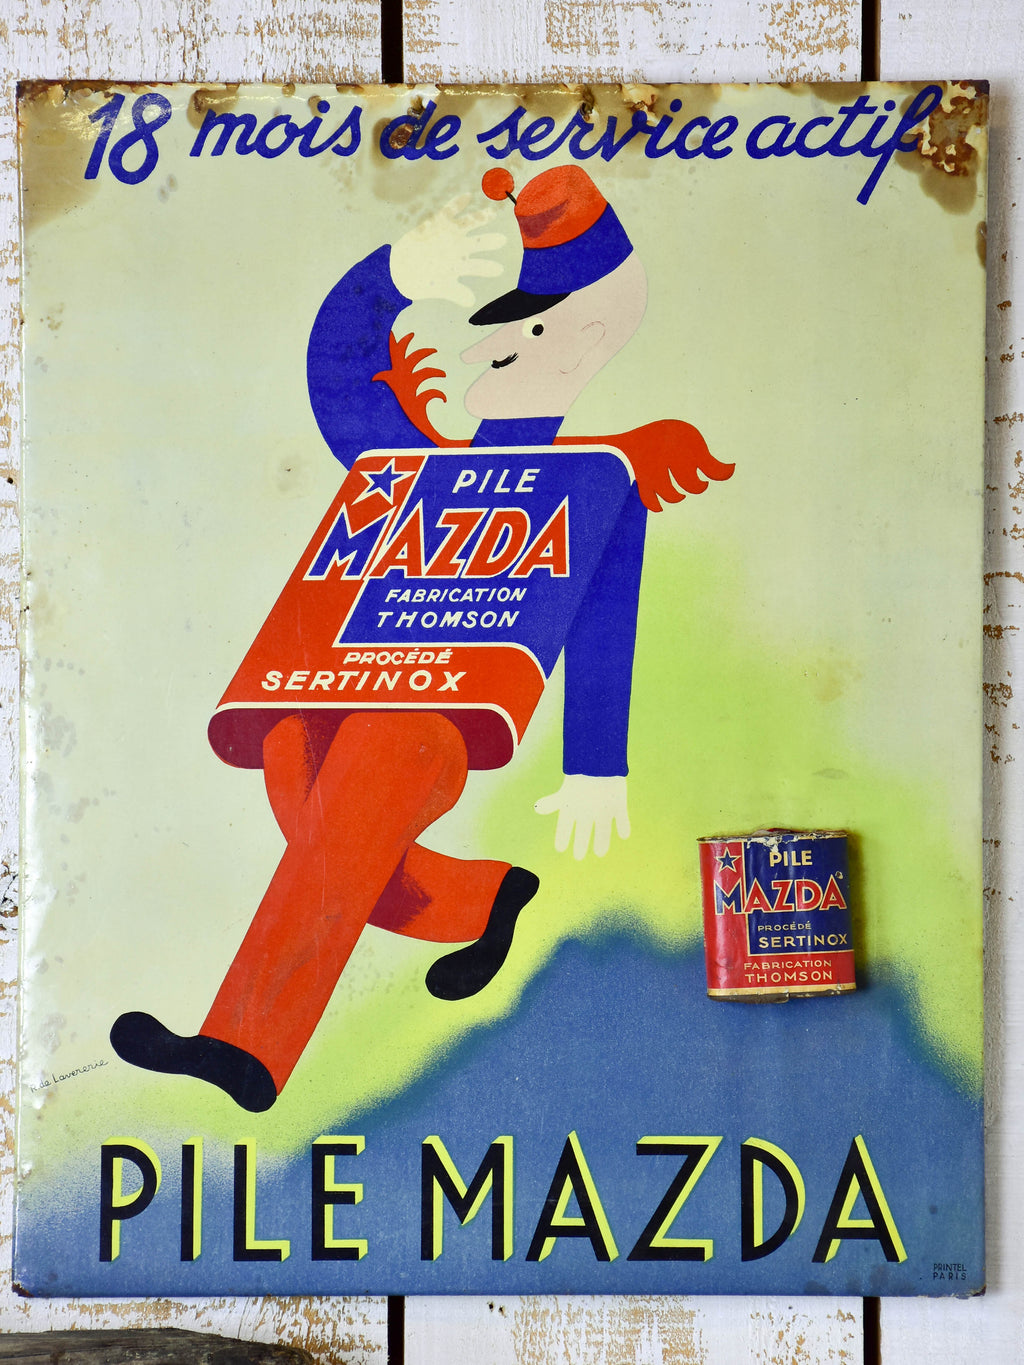 Vintage French Mazda battery sign